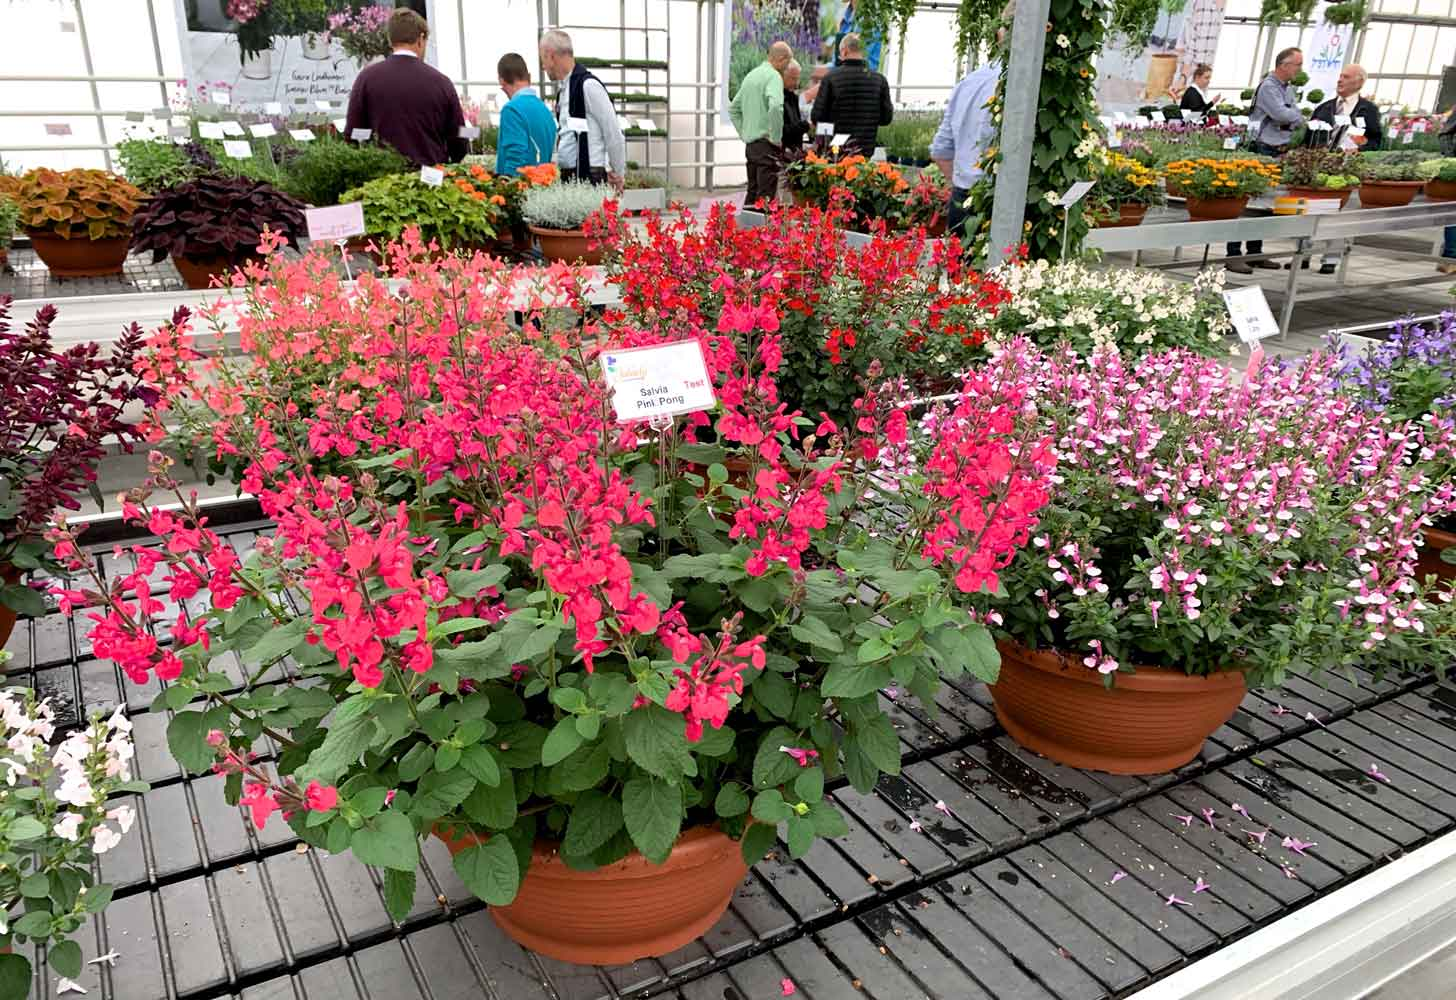 NWP-salvias-at-the-Euro-trials-on-the-Jaldety-stand-in-Holland-2019-